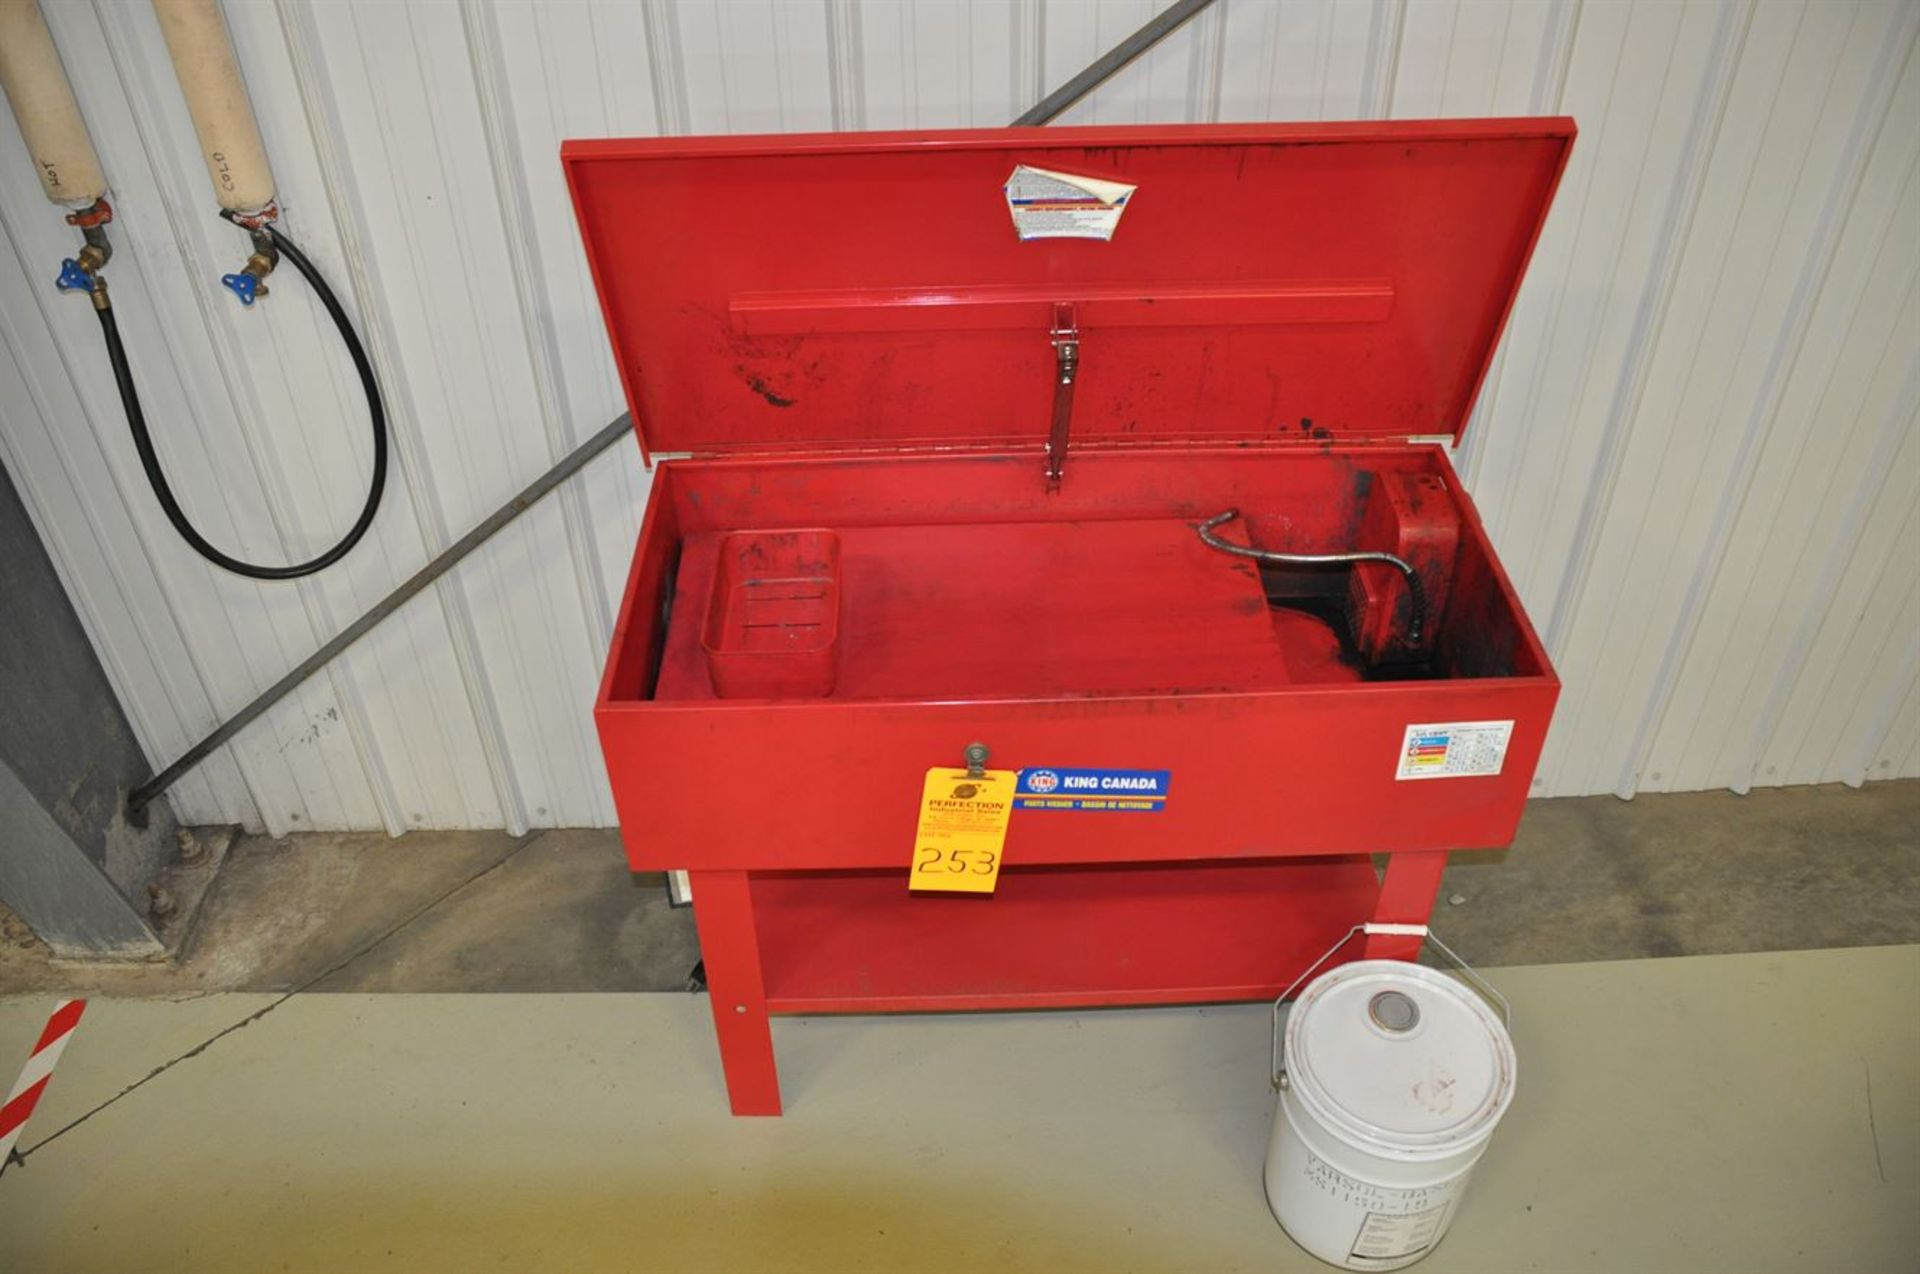 King Canada Parts Washer w/ pail Varsol